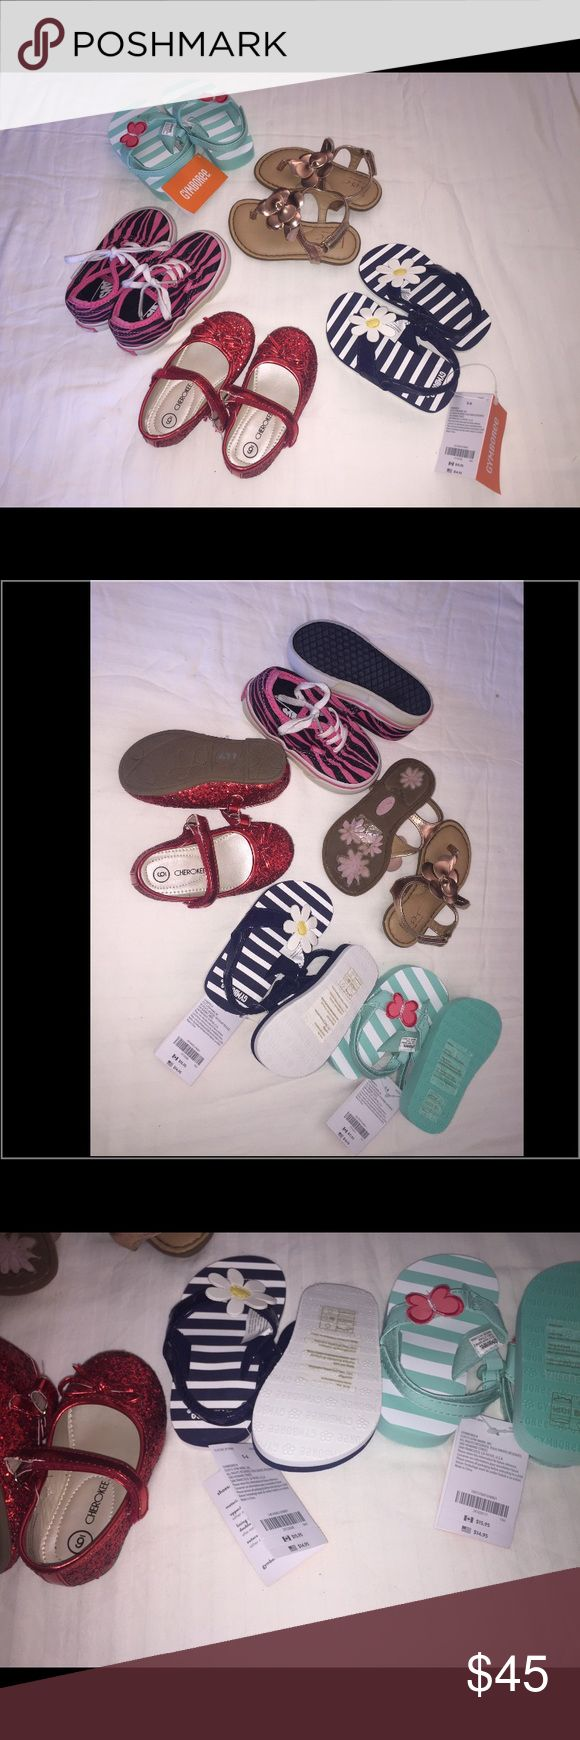 Toddler Girls Shoes Lot 5 pairs of toddler sneakers, sandals, and flip flops *Vans sneakers gently worn condition size 6 *Cherokee ruby red ballerina flats, new without tags, size 6 1/2  *B.O.C gold sandals size 6 *Gymboree navy blue flower flip flops, new with tags, size 5/6 *Gymboree butterfly flip flops, new with tags, size 5/6 All 5 pairs of shoes for $45 Gymboree, Vans, b.o.c, Cherokee Shoes